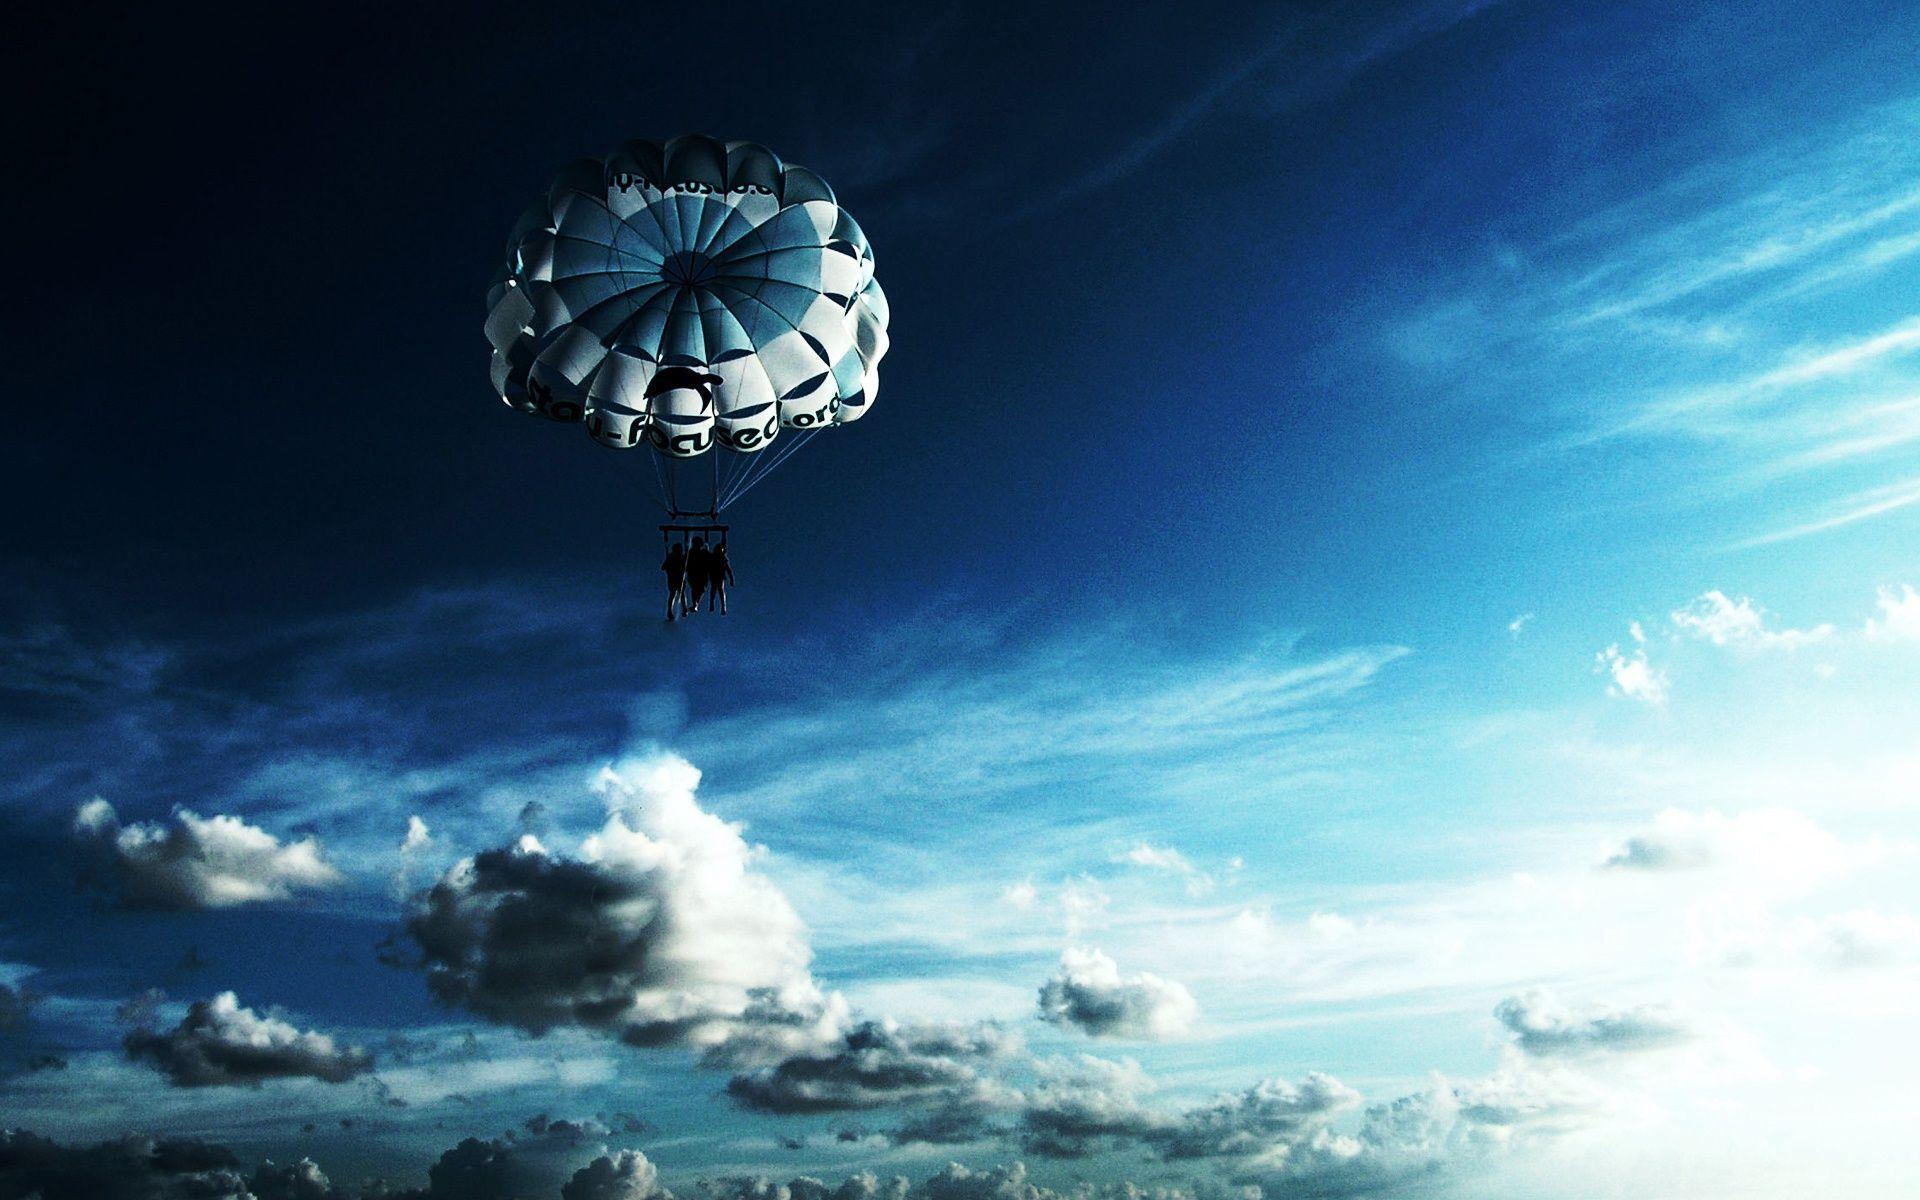 18 Awesome HD Skydiving Wallpapers - HDWallSource.com